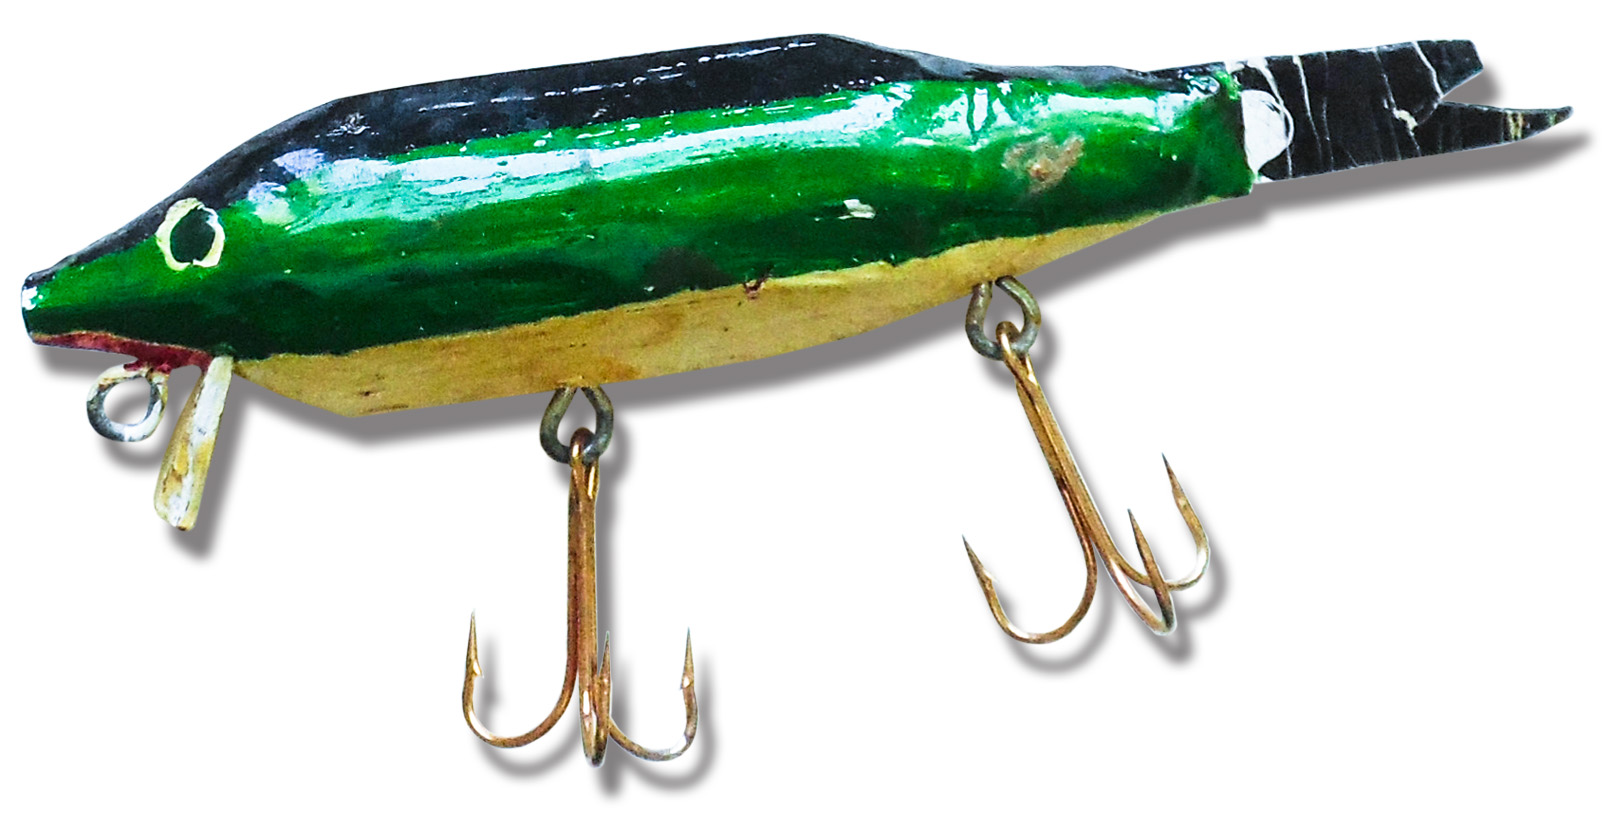 Diy bass lures do it your self for Homemade fish bait